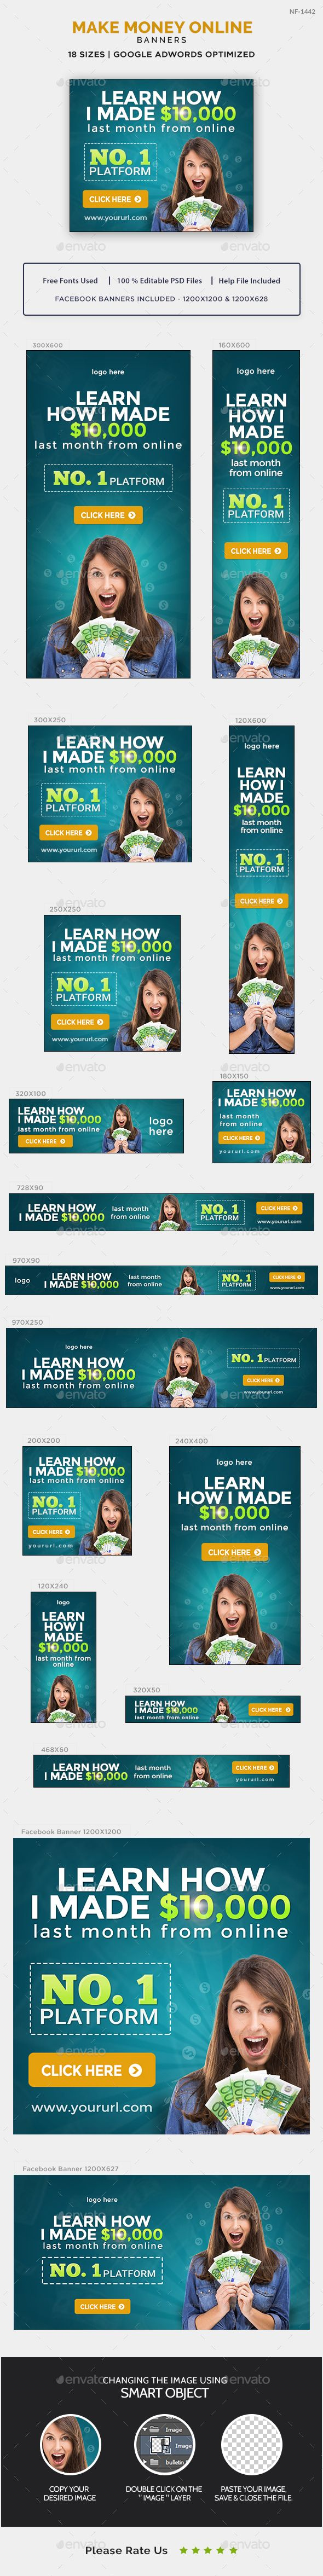 Make Money Online Banners Template PSD. Download here: https://graphicriver.net/item/make-money-online-banners/17230387?ref=ksioks